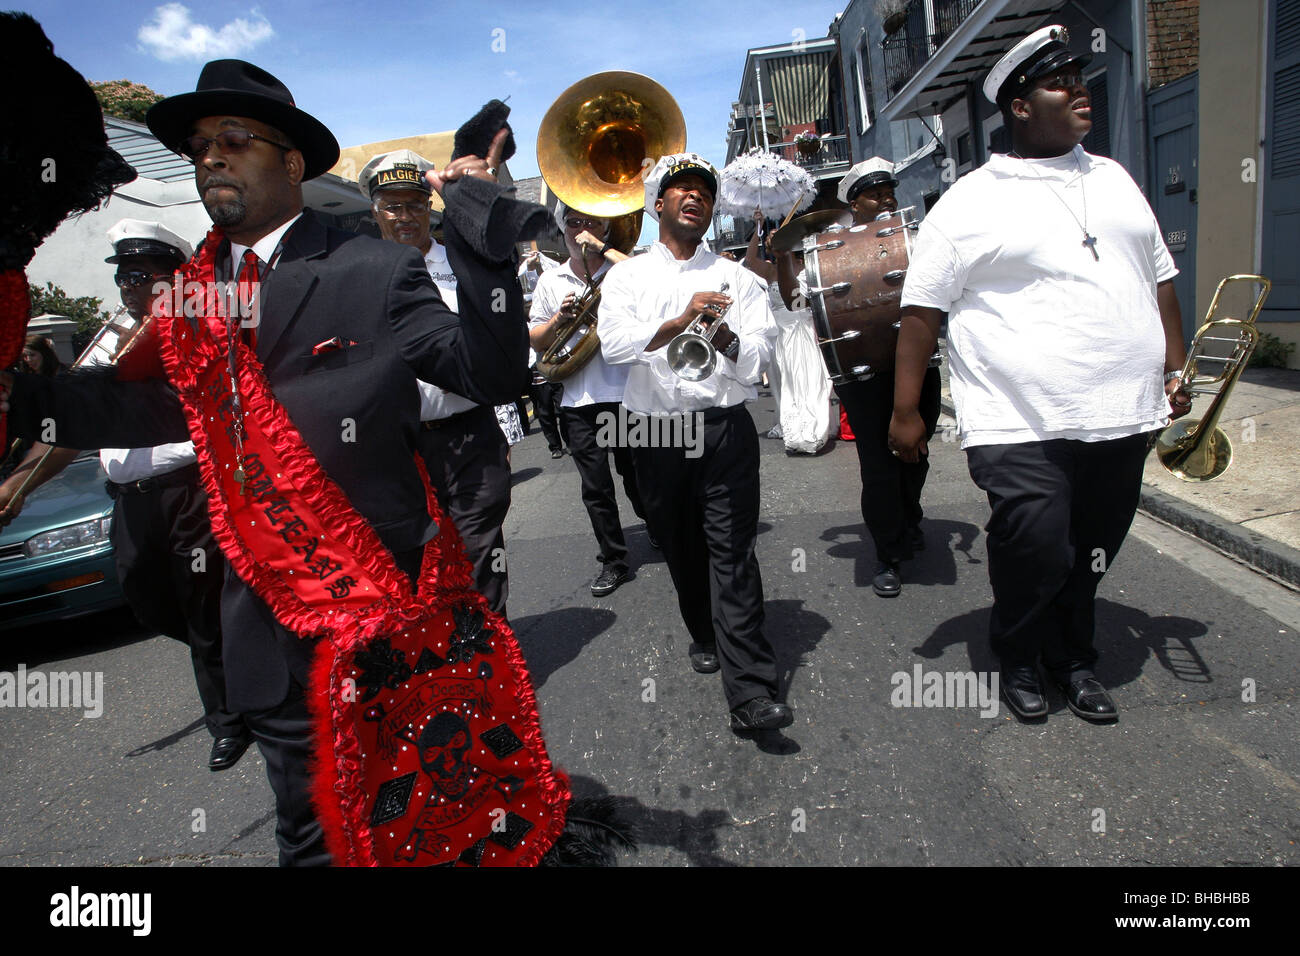 Algiers Brass Band, French Quarter, New Orleans, Louisiana, USA - Stock Image